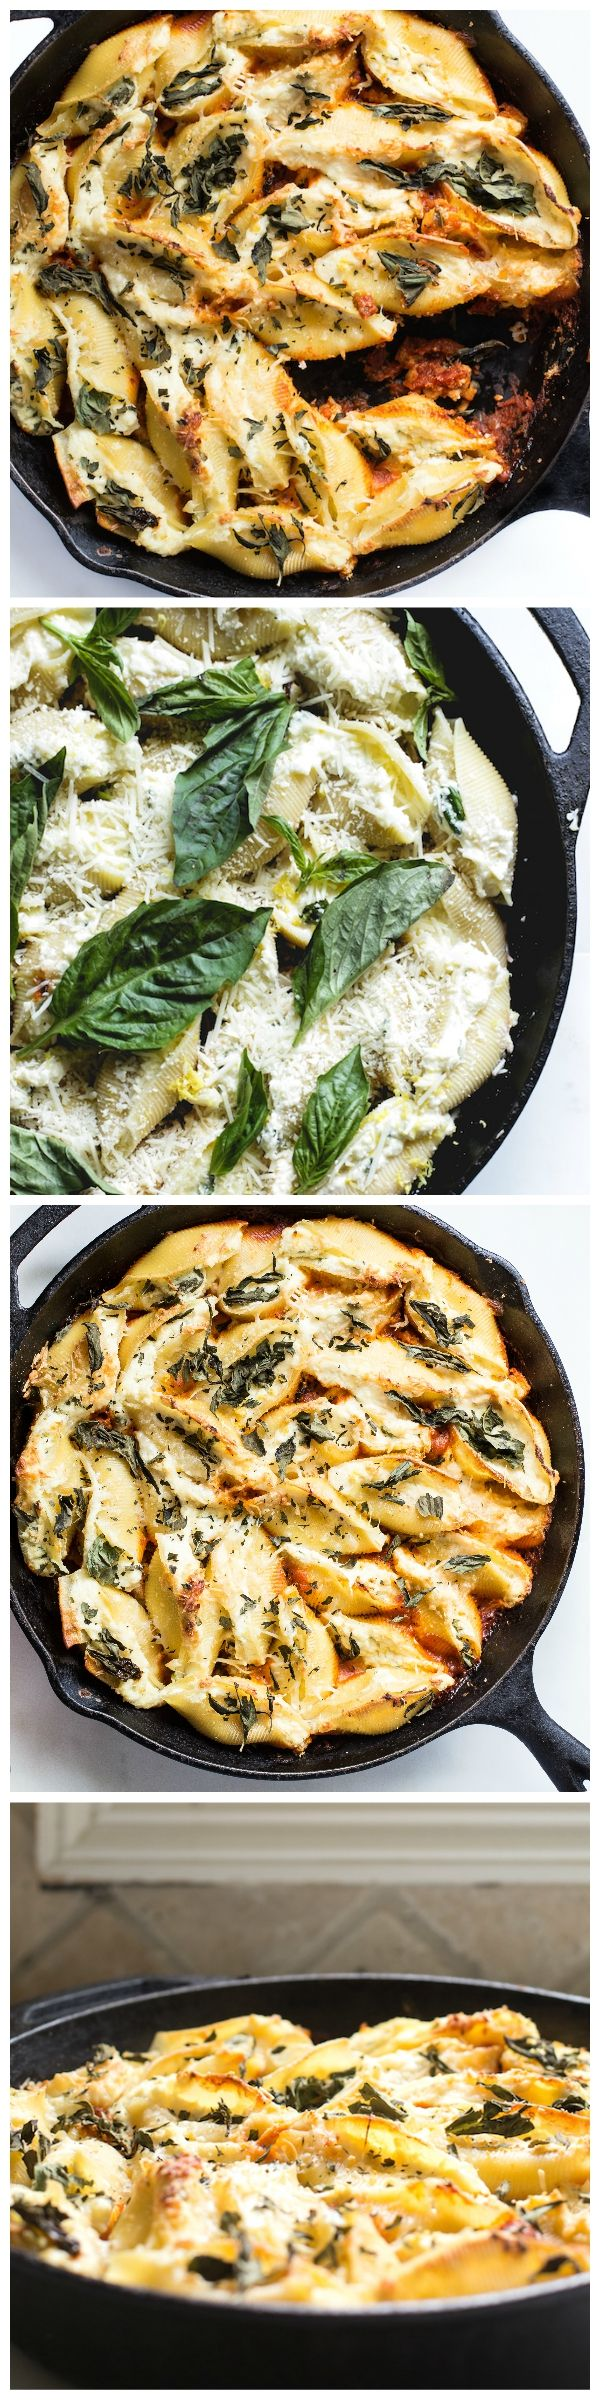 17 Best images about { Most Pinned Recipes } on Pinterest ...